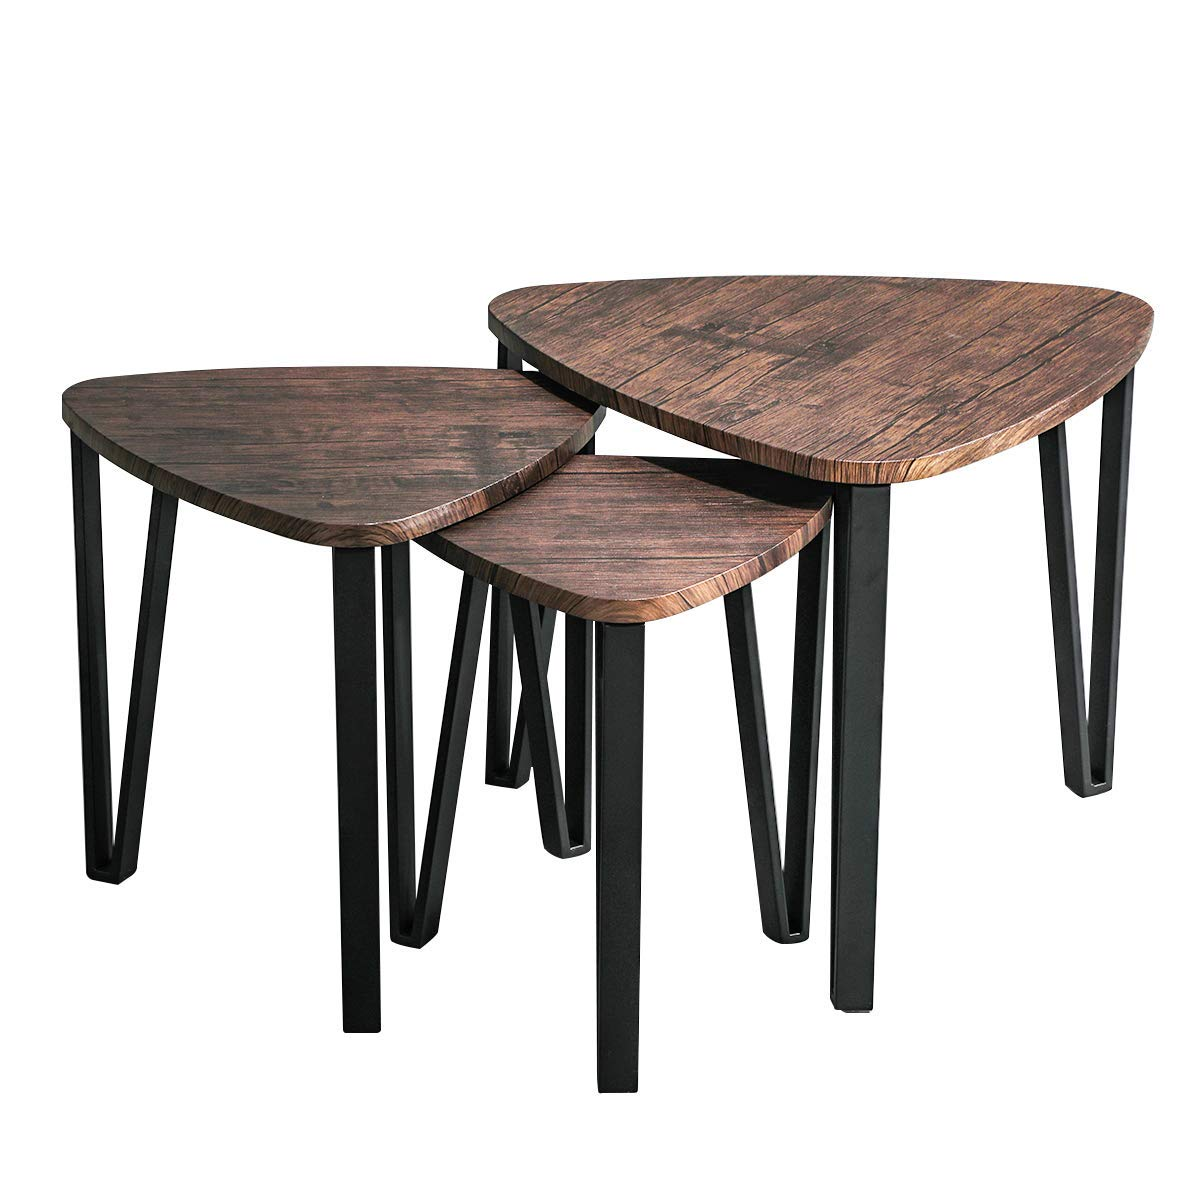 Industrial Nesting-Tables Living Room Coffee Table Sets of 3 Stacking End Side Tables Nightstands Vintage Night Tables for Bedroom Home Office Telephone Table,Brown by Coavas